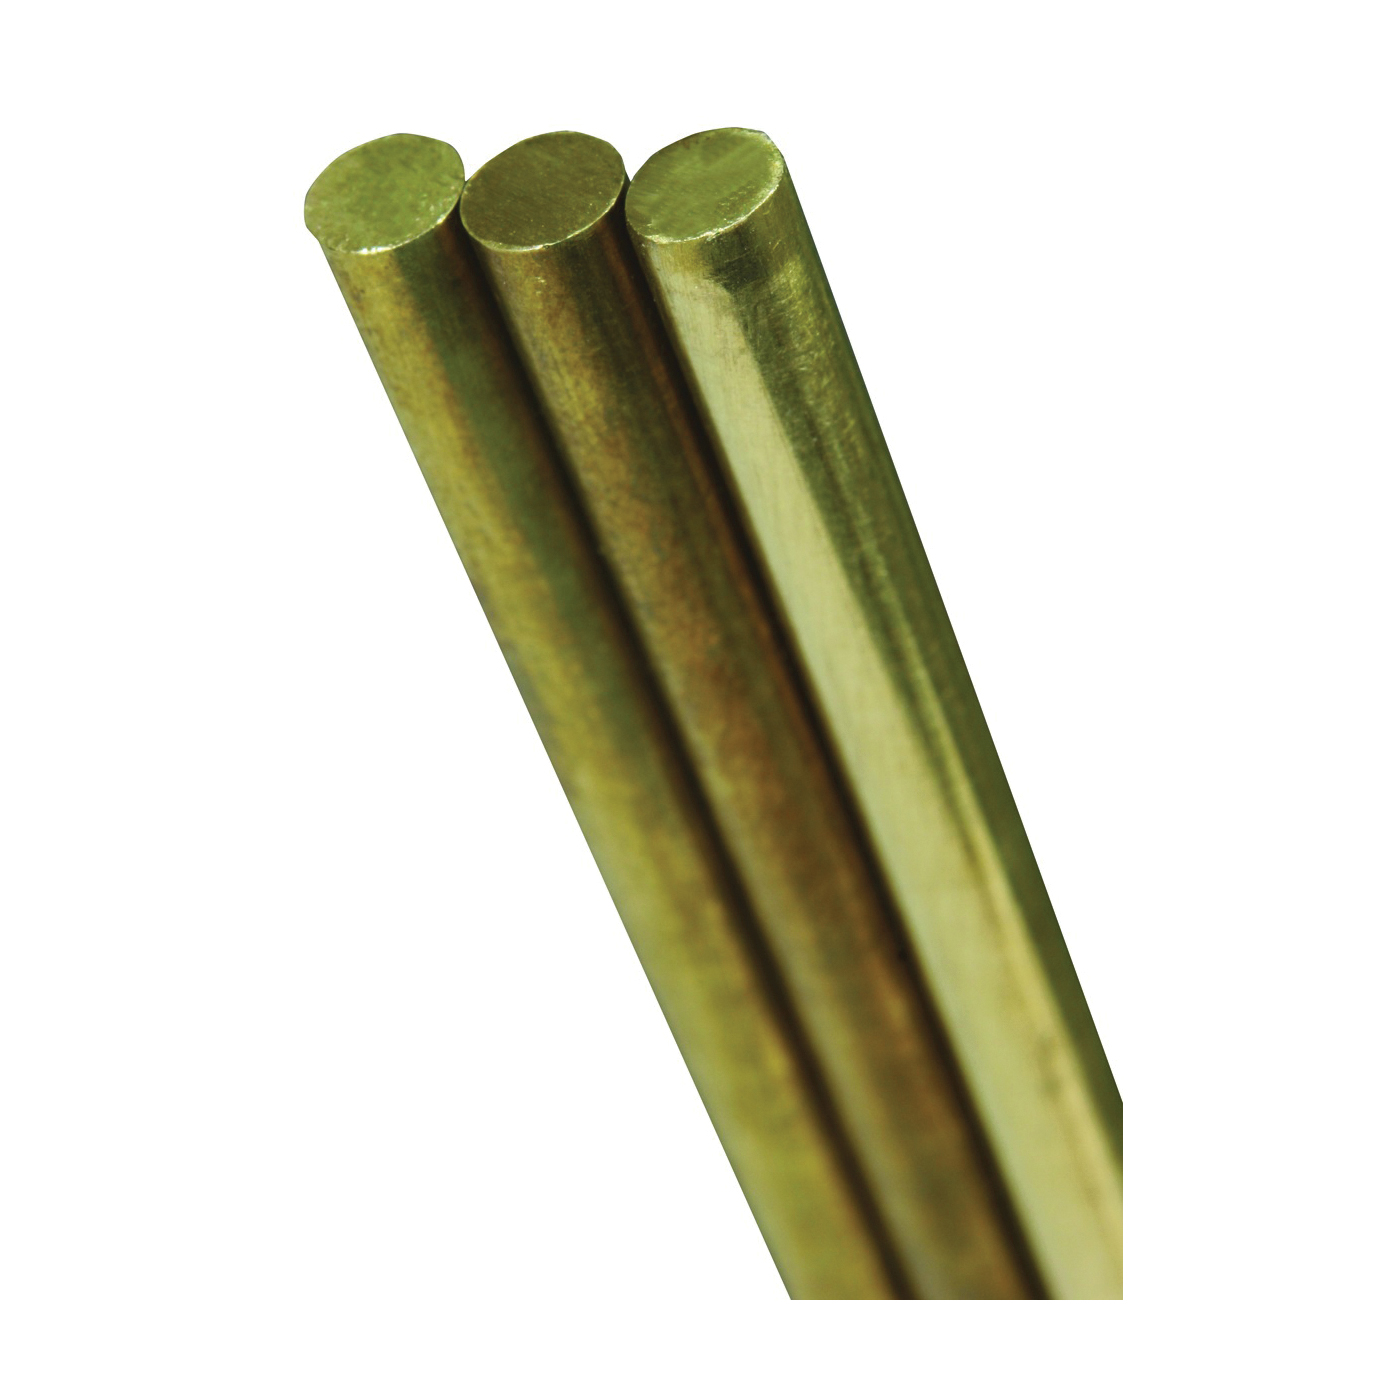 Picture of K & S 8163 Round Rod, 3/32 in Dia, 12 in L, 260 Brass, 260 Grade